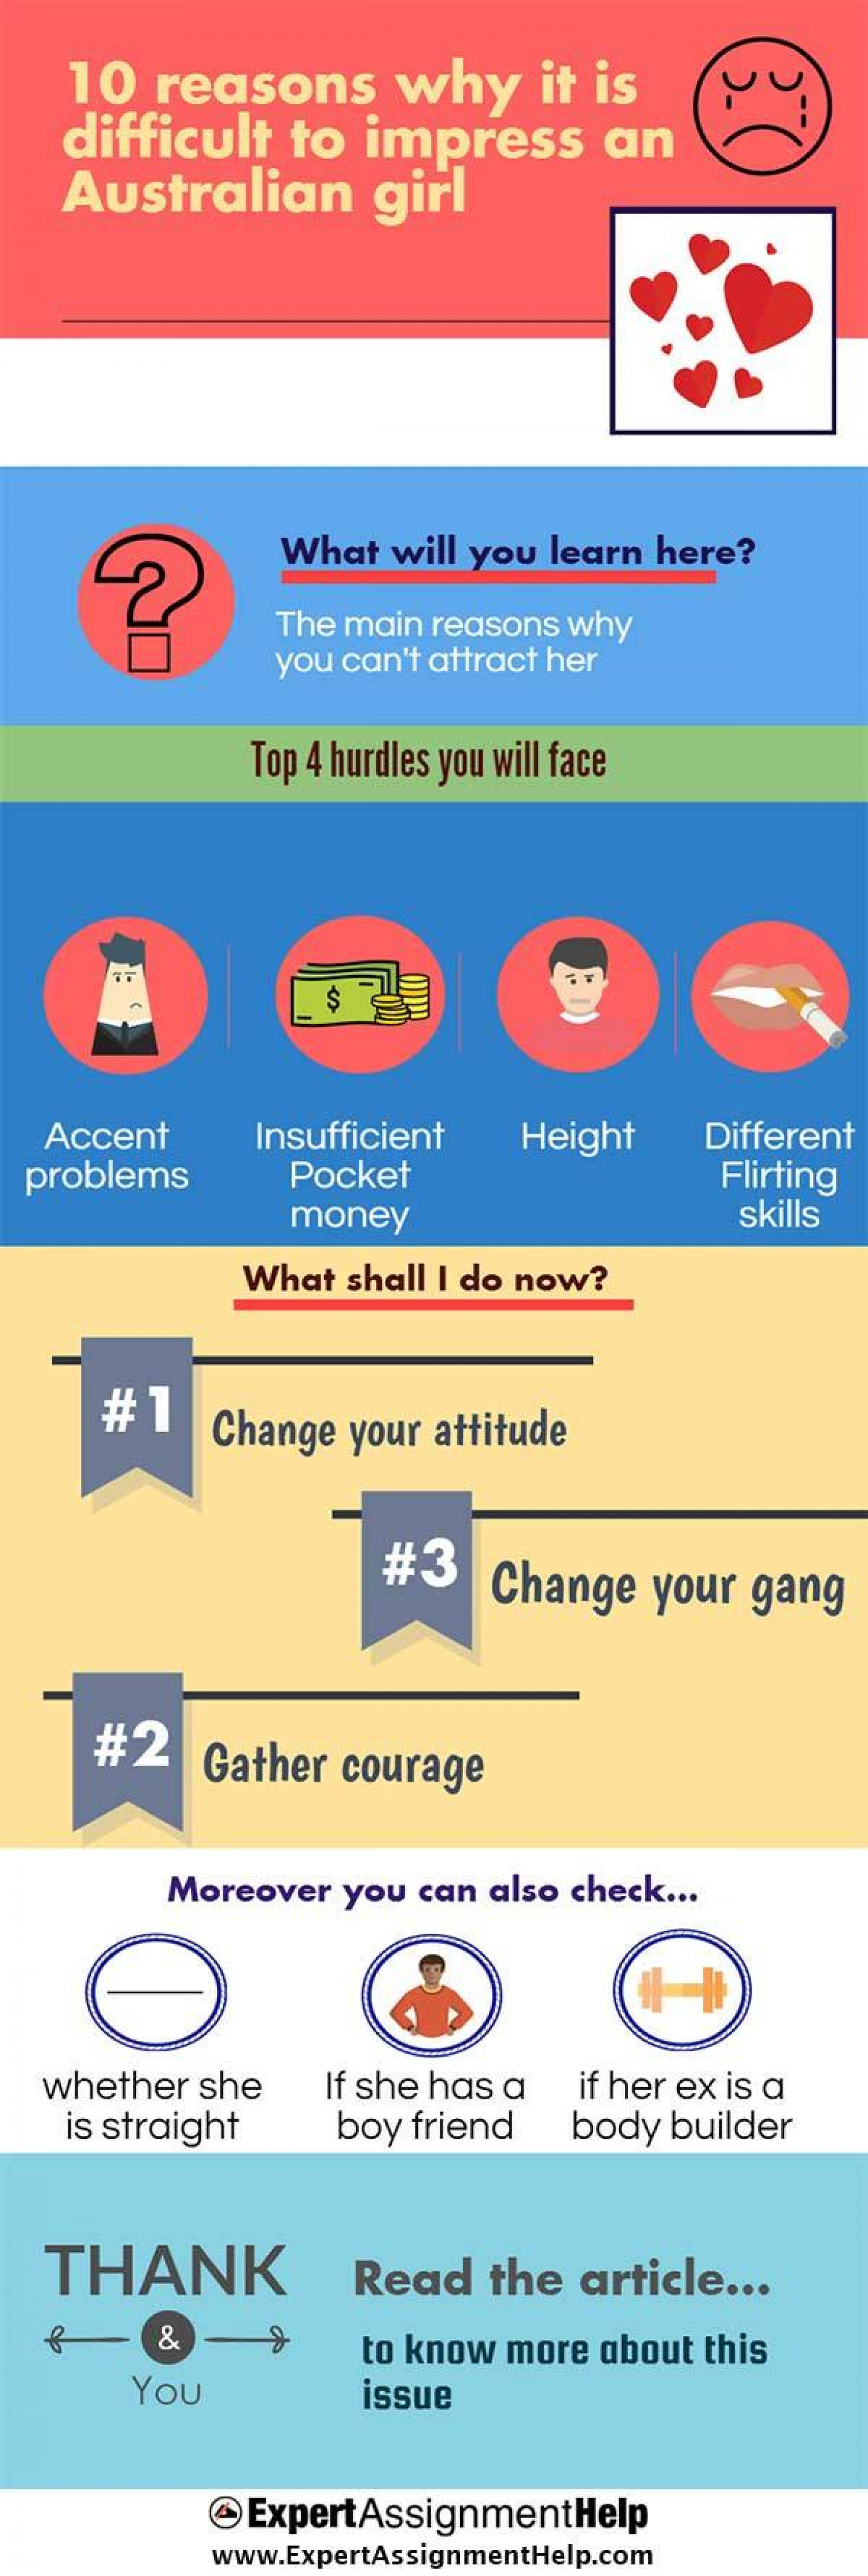 10 reasons why it is difficult for Indian guys to impress Aussie girls Infographic